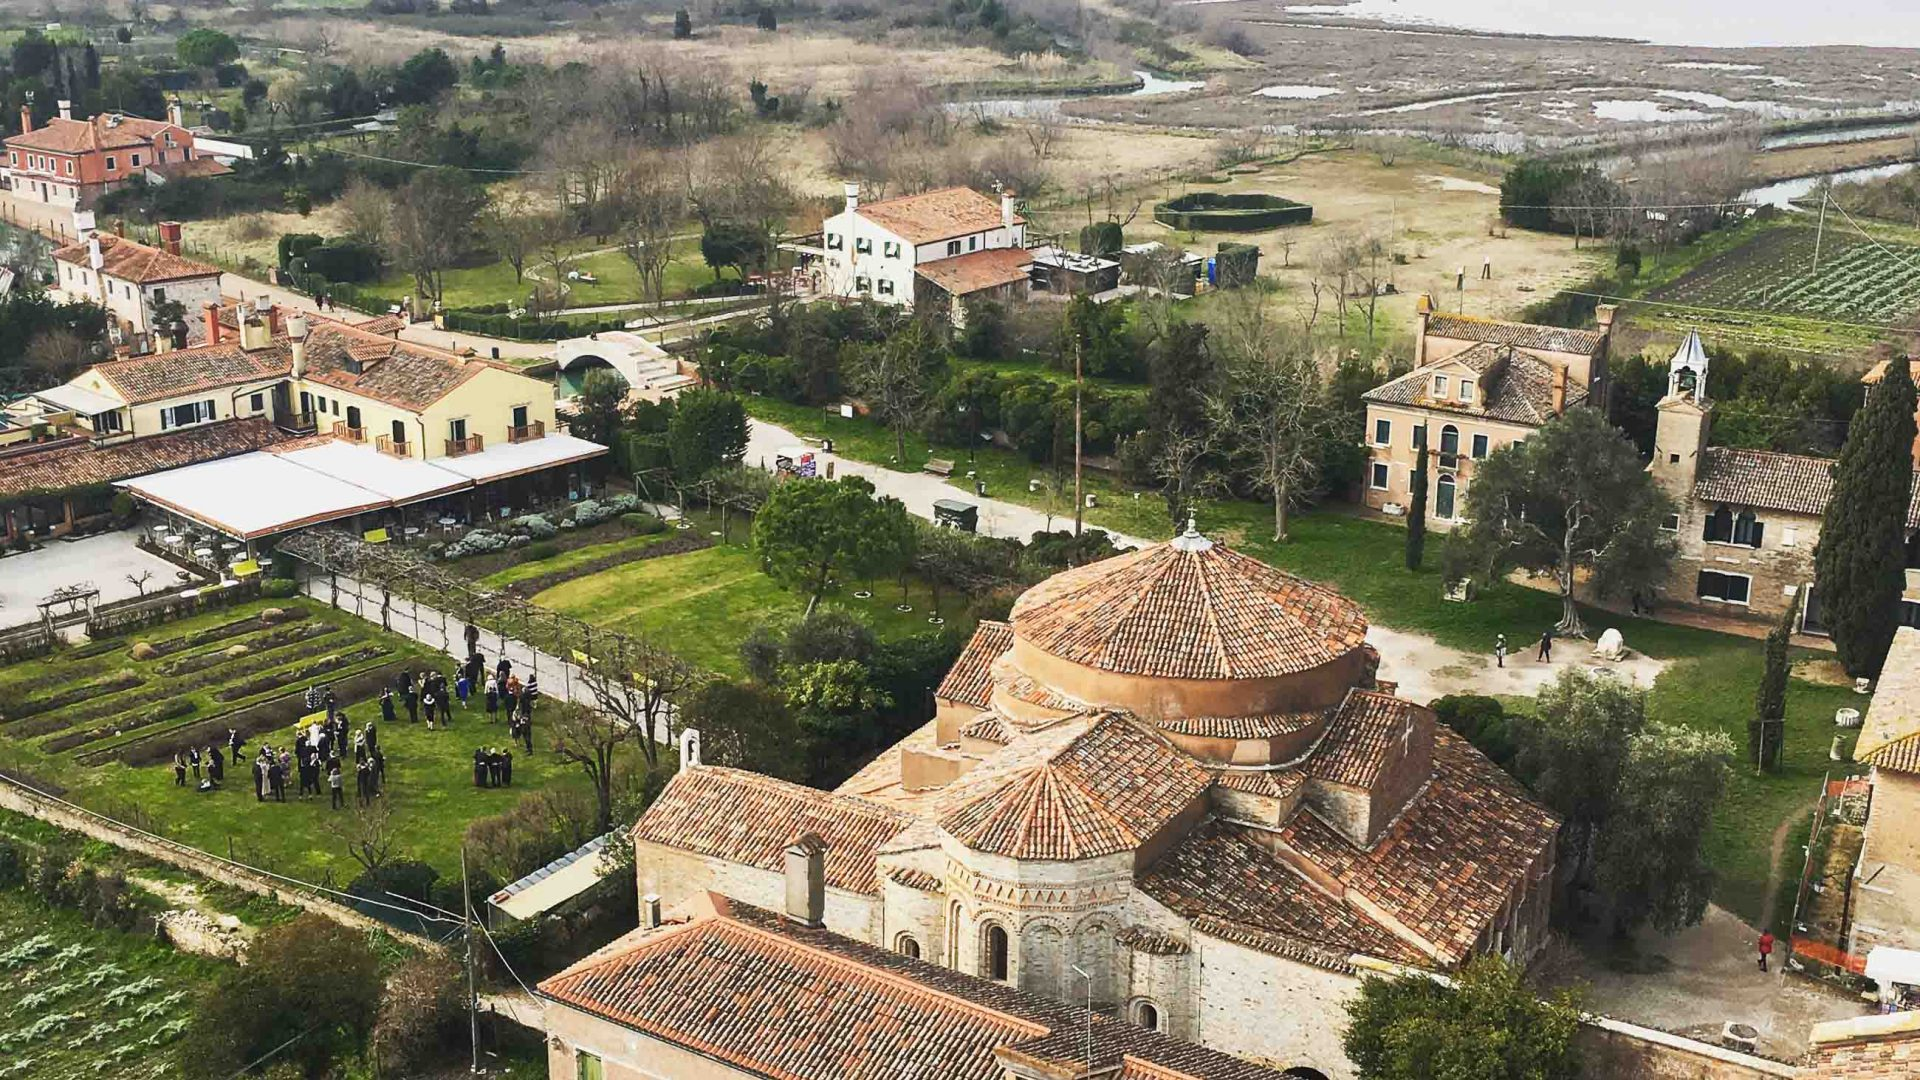 View from the bell tower on Torcello island, Venice.